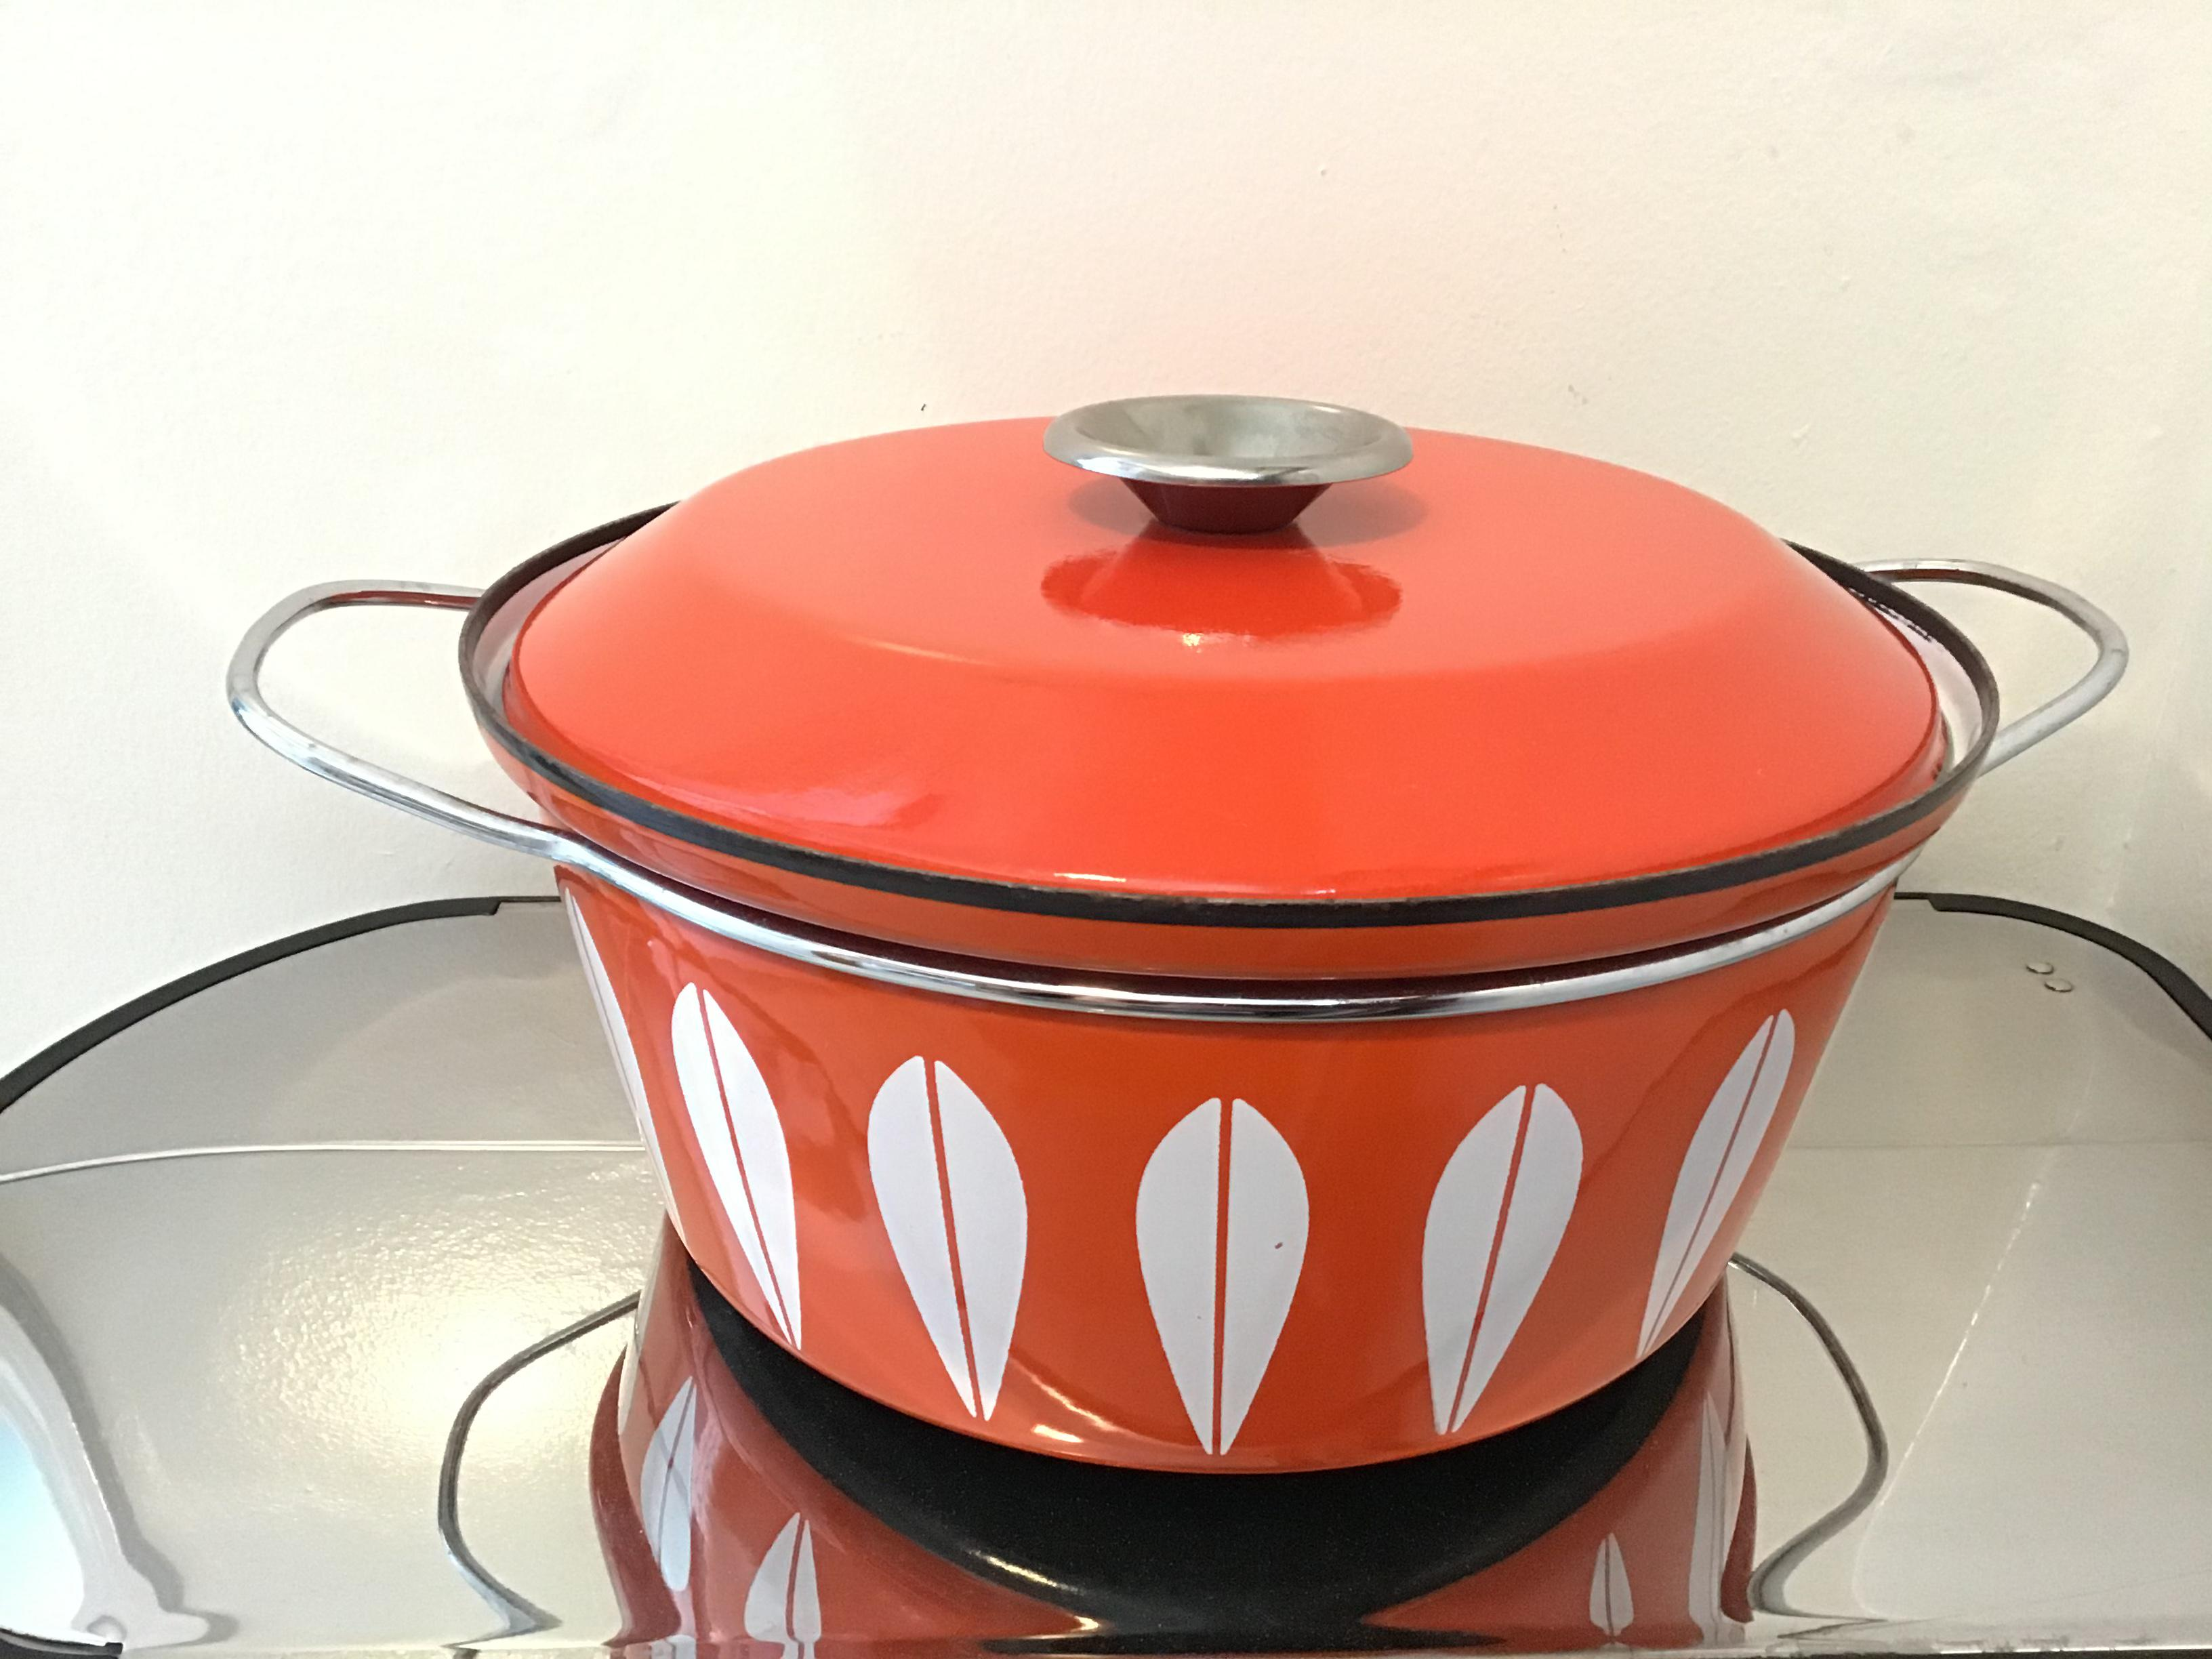 Cathrineholm Lotus Norway Red and White Enamel Dutch Oven 7.5  1960s VINTAGE by Plantdreaming